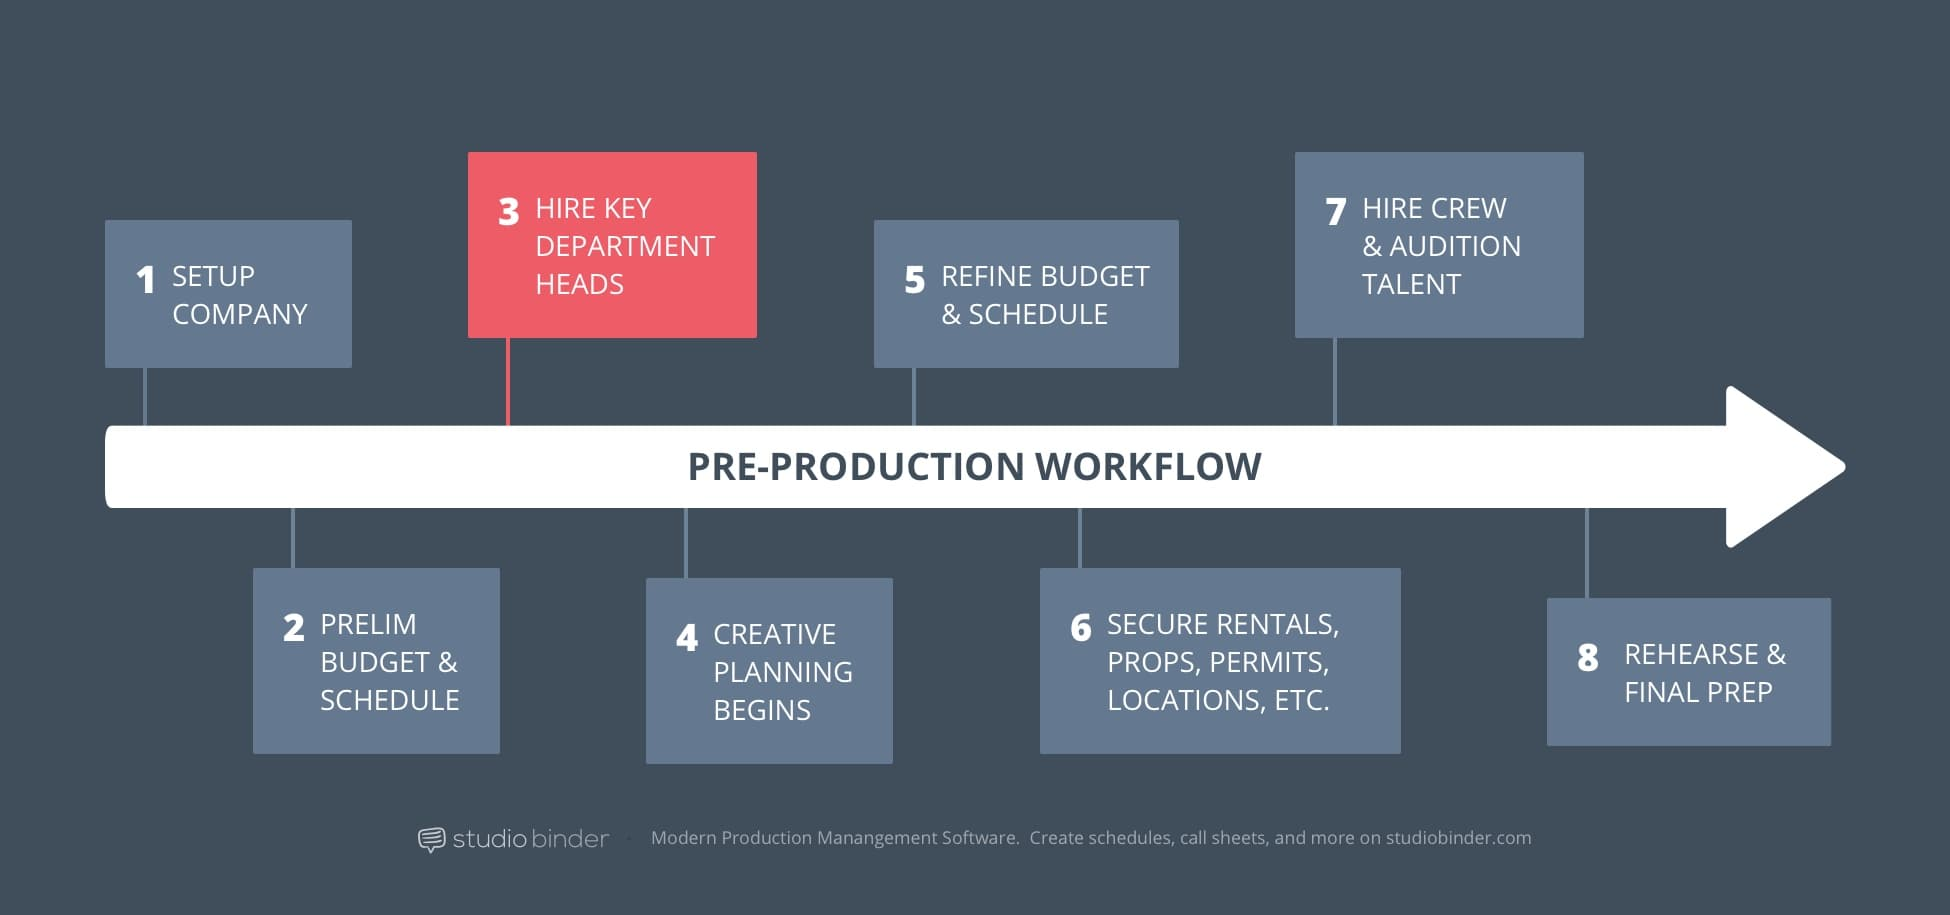 3 - StudioBinder Pre-Production Workflow - Hire Department Keys